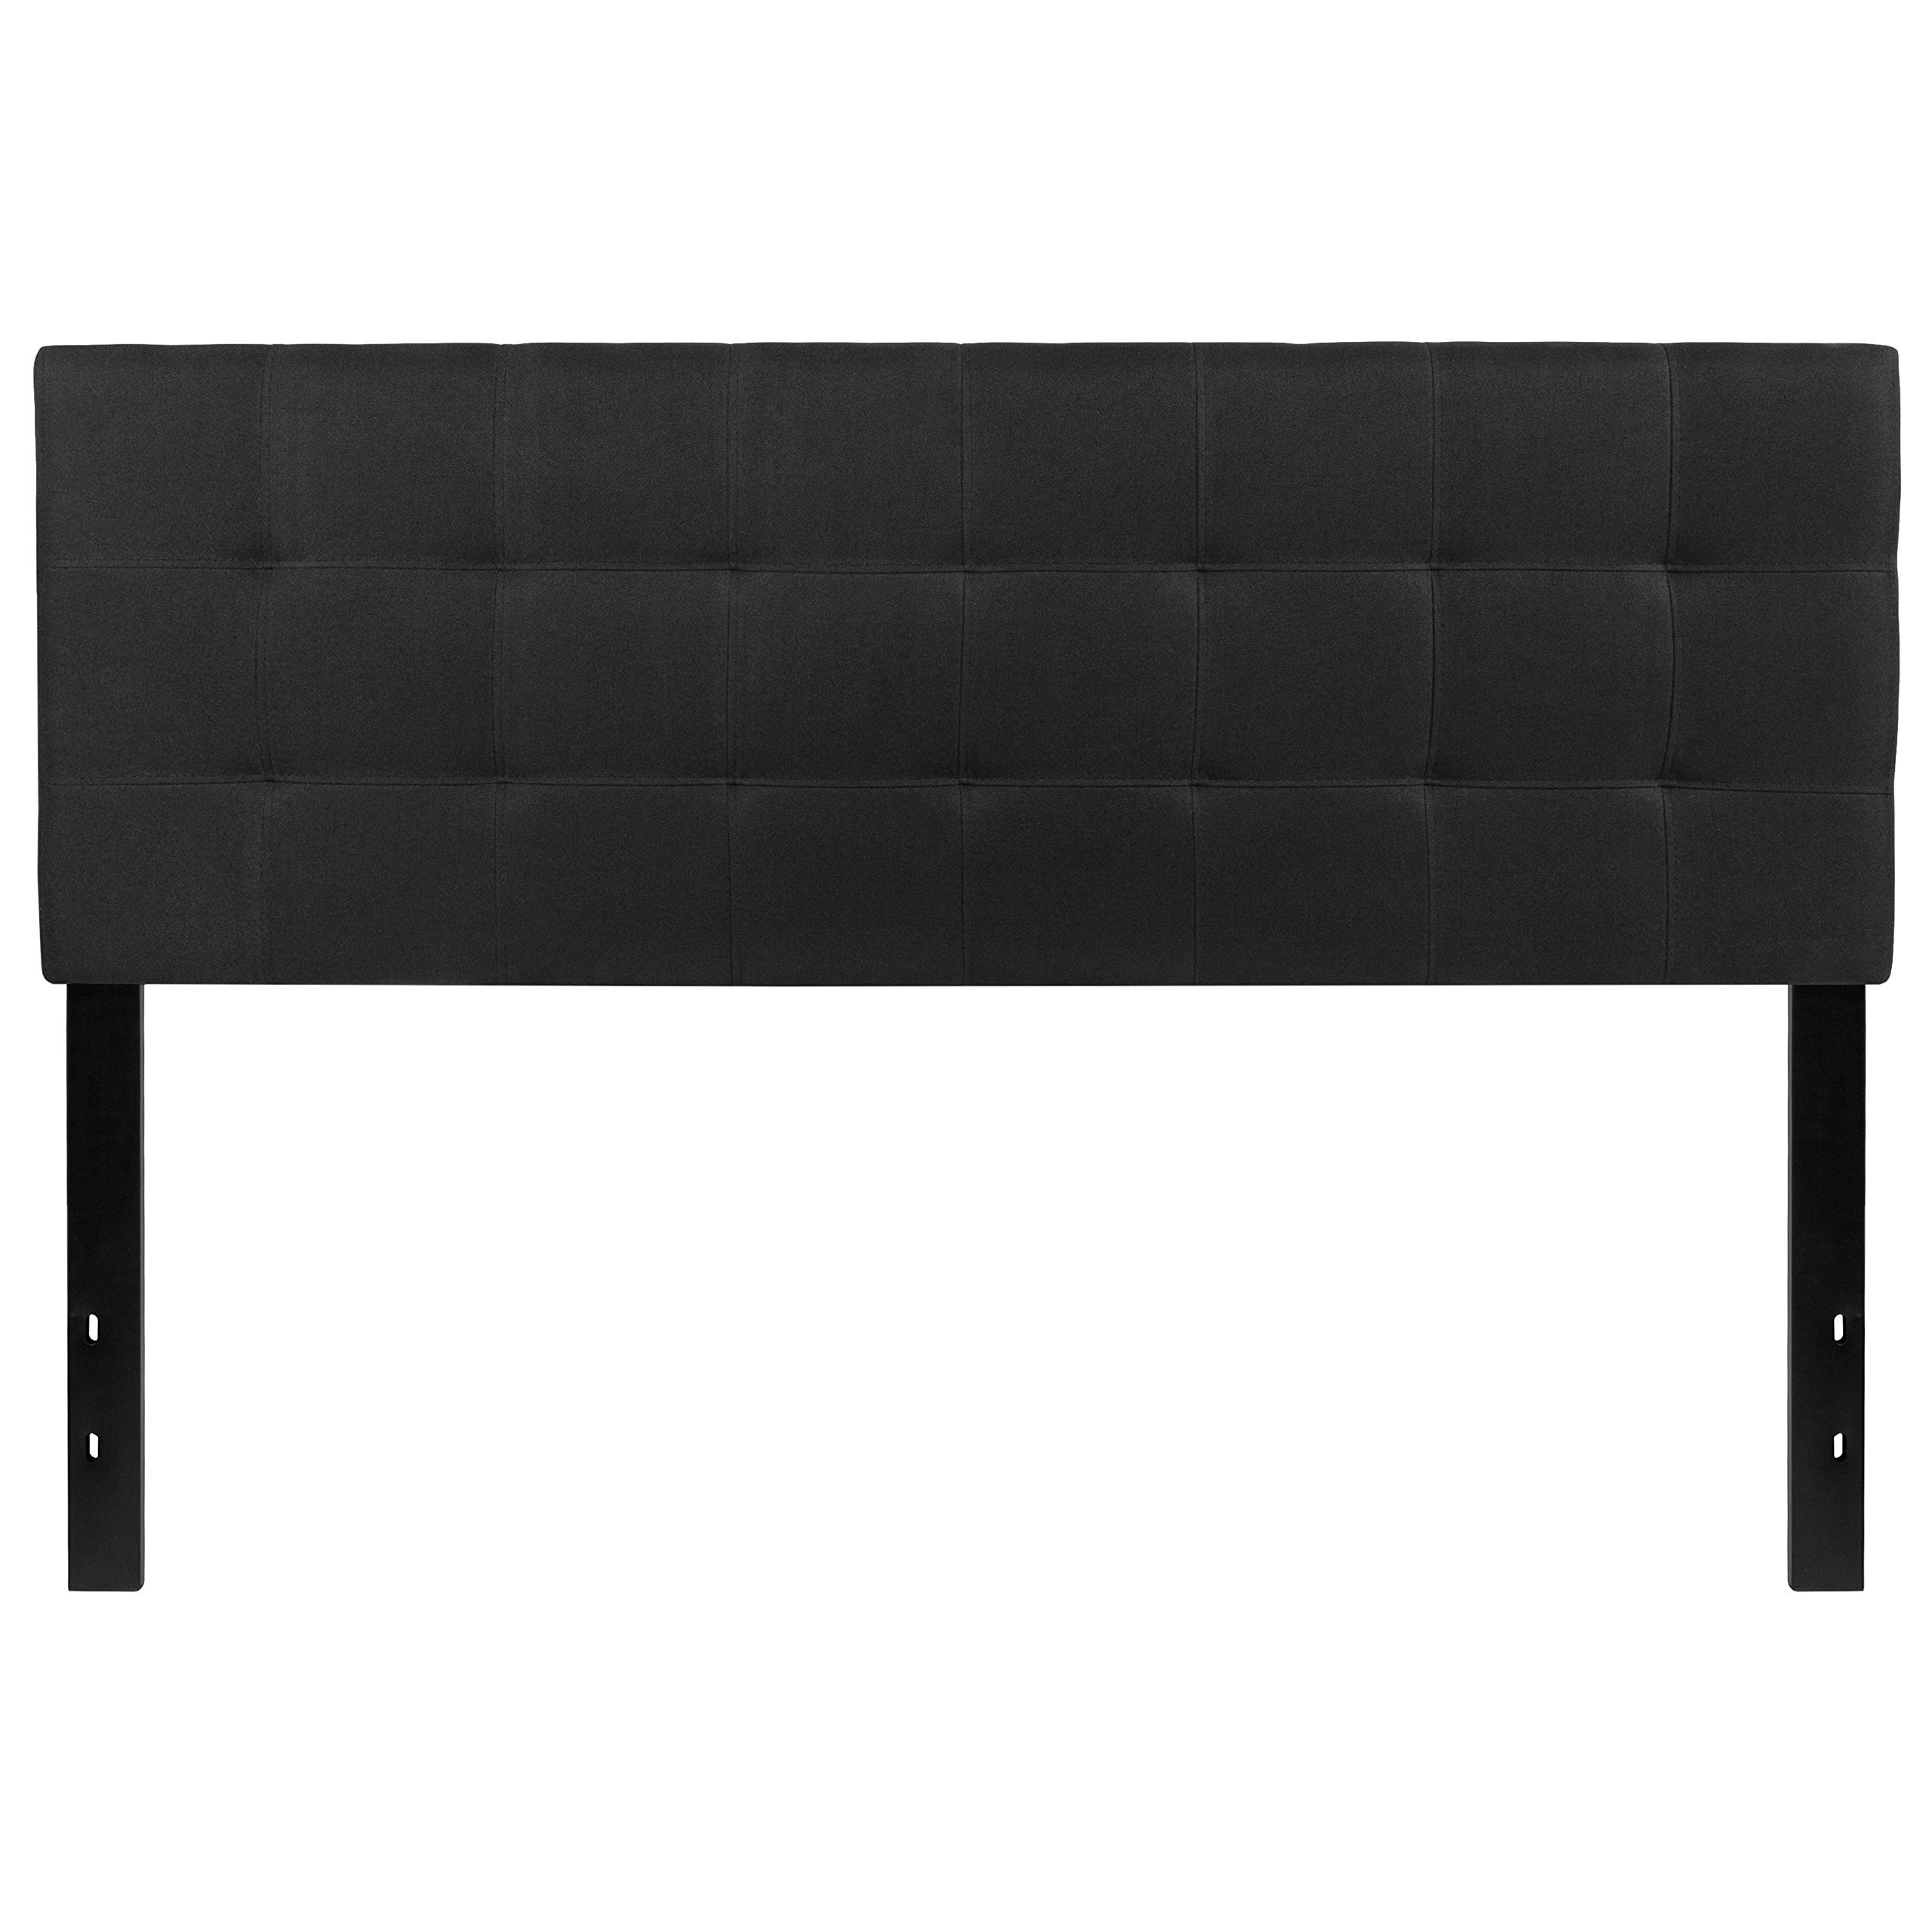 Flash Furniture Bedford Tufted Upholstered Queen Size Headboard in Black Fabric - HG-HB1704-Q-BK-GG by Flash Furniture